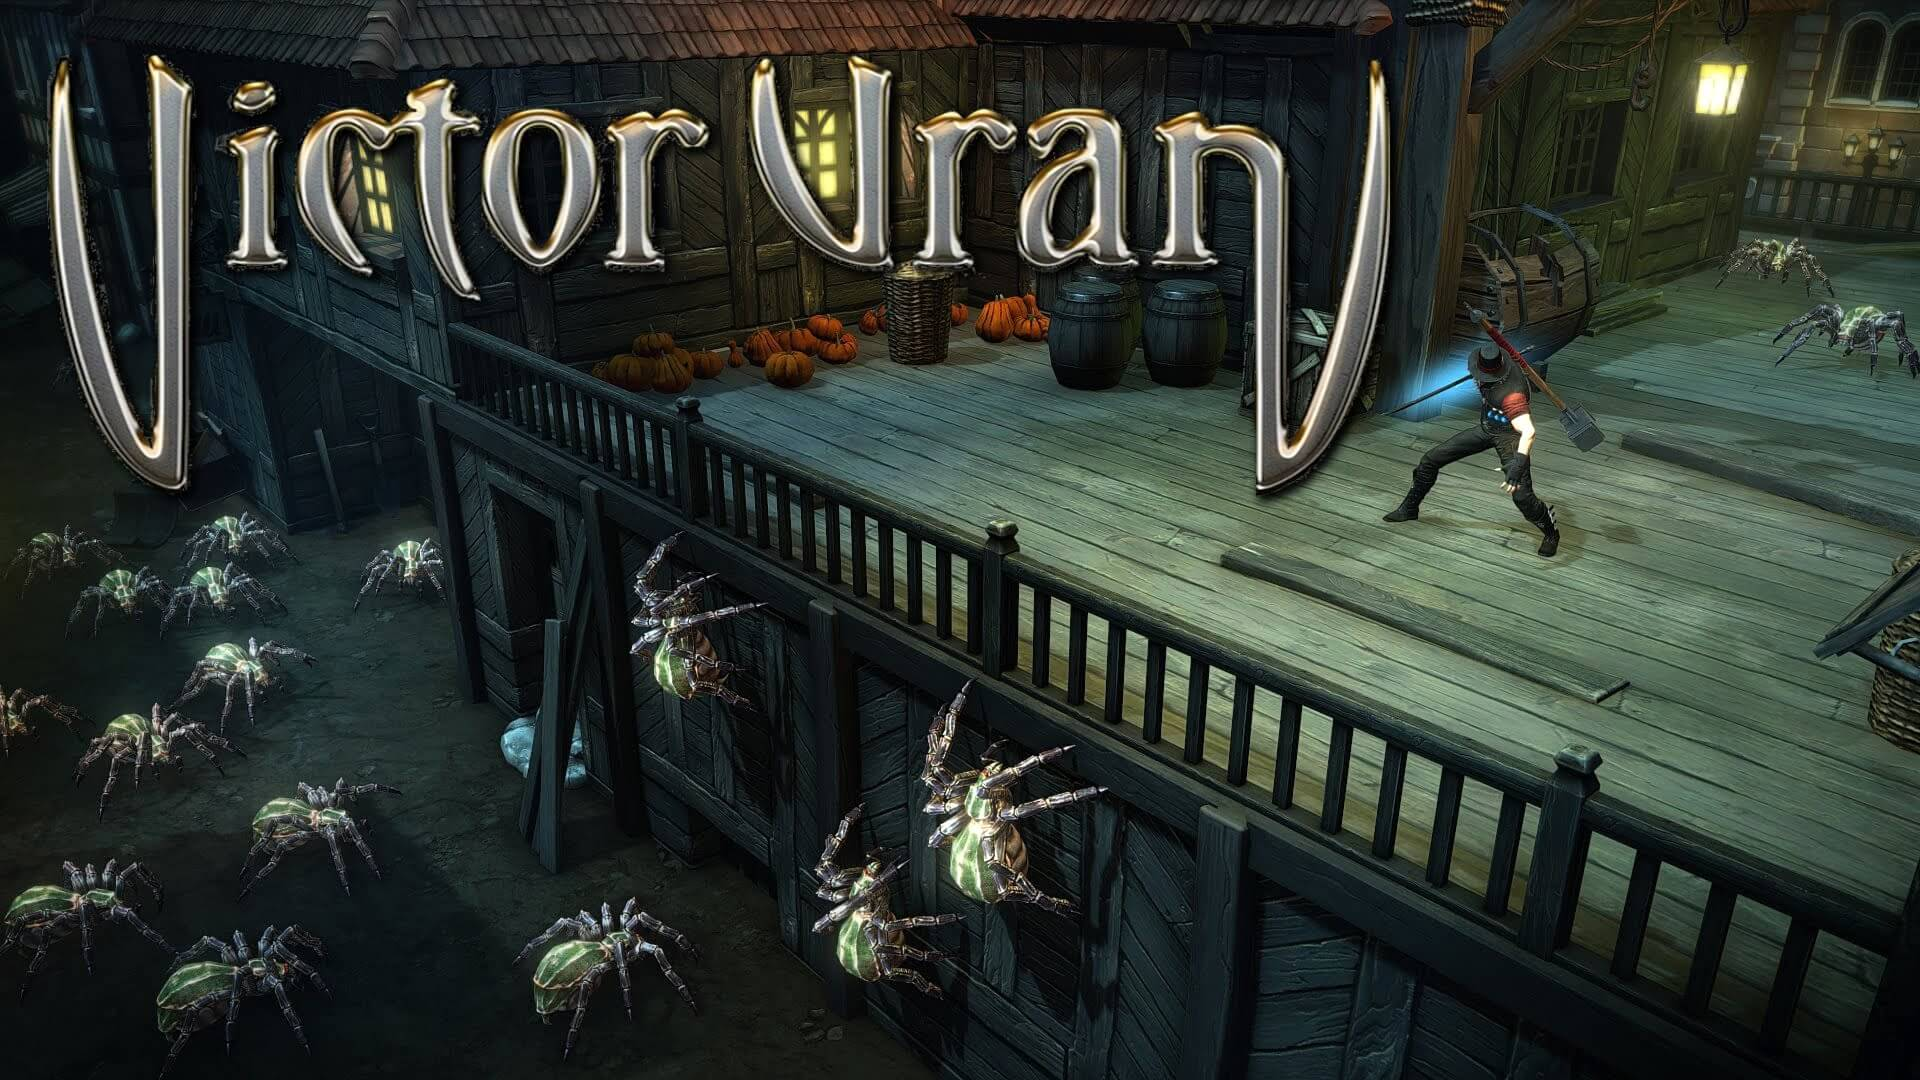 Victor Vran Steam Key Giveaway